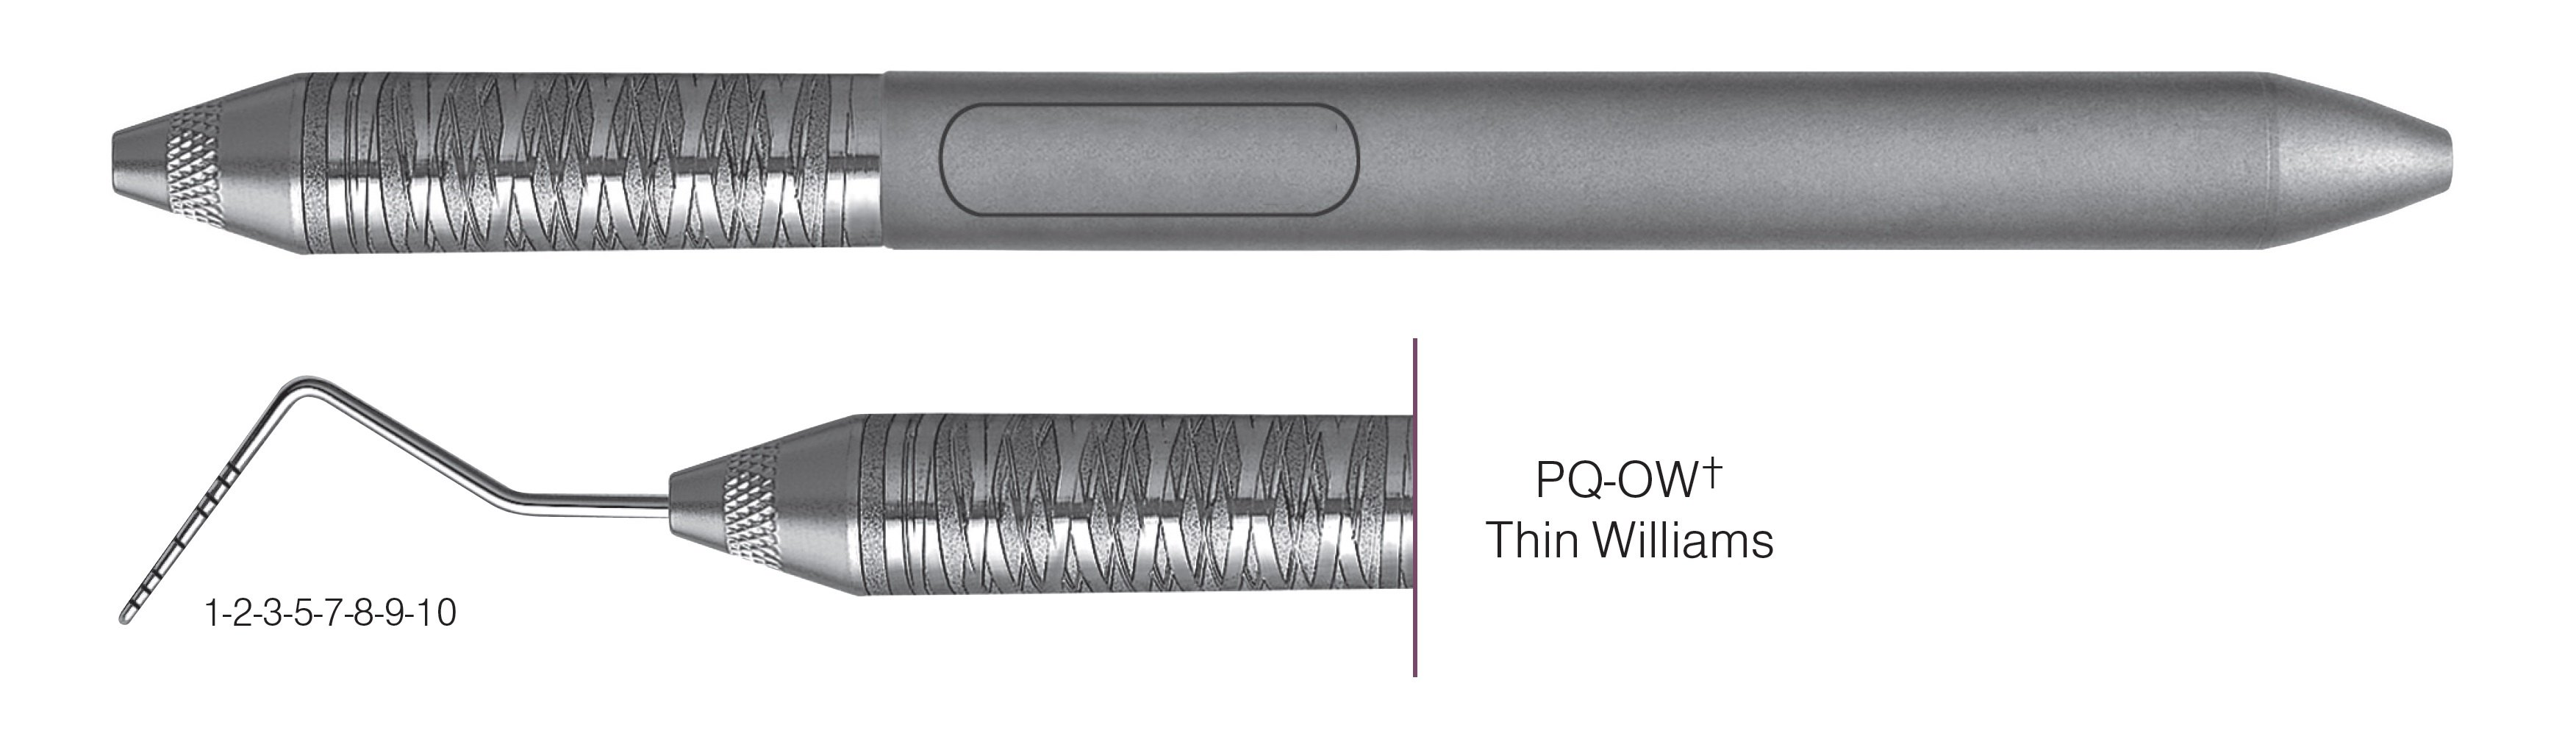 HF-PQOW6-6, COLOR-CODED PROBES PQ-OW+ Thin Williams, Black markings, 1-2-3-5-7-8-9-10 mm, Handle Satin Steel, Aluminum Titanium Nitride (AlTiN) coating, Single End